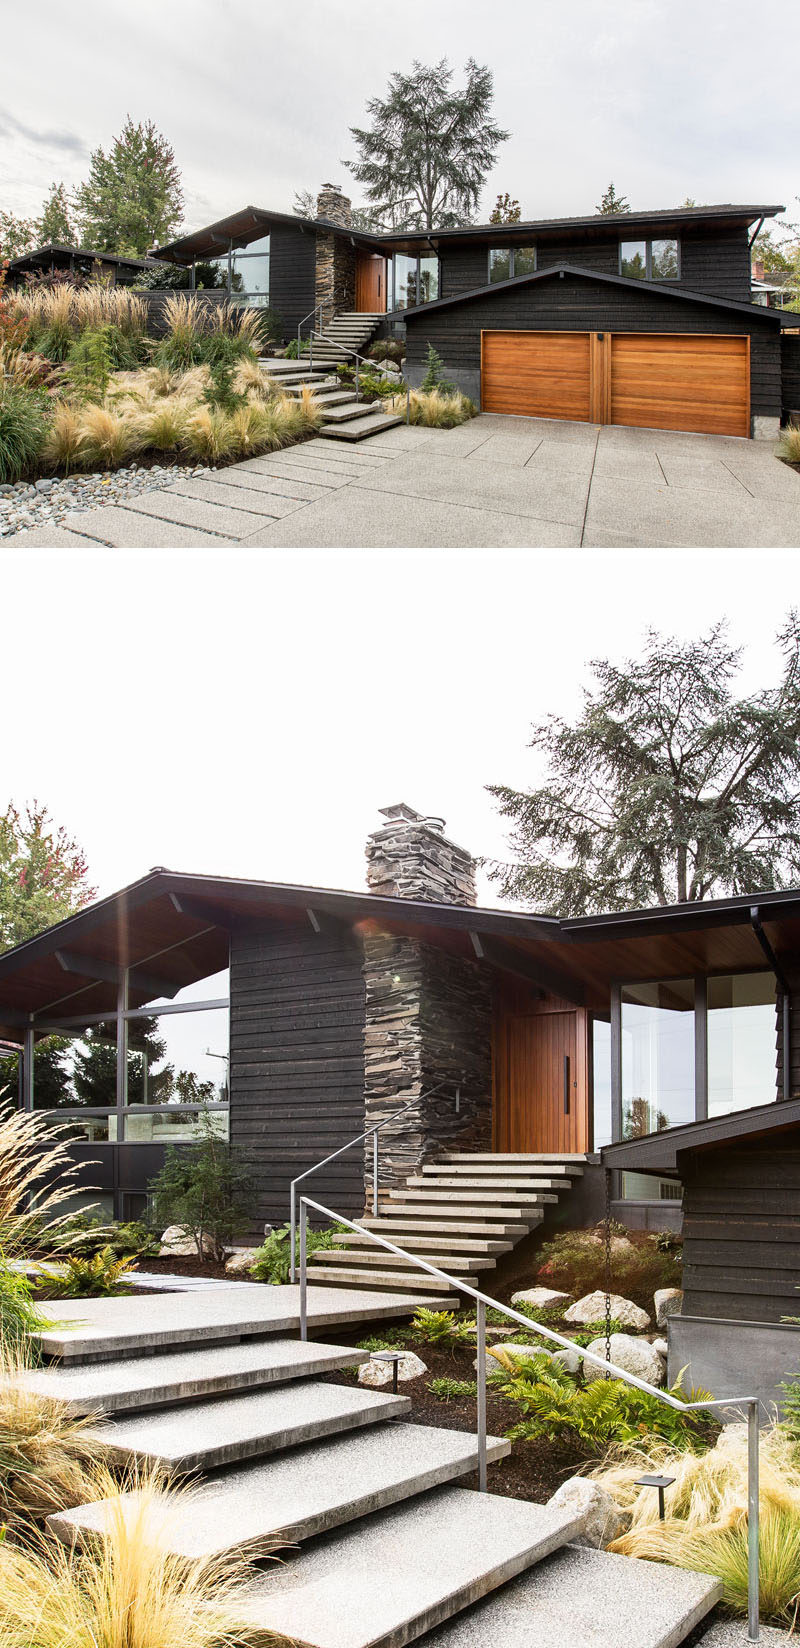 This renovated house has large concrete steps surrounded by landscaping lead up to the front door beside the stone fireplace chimney. #RenovatedHouse #UpdatedHouse #ModernLandscaping #FrontGarden